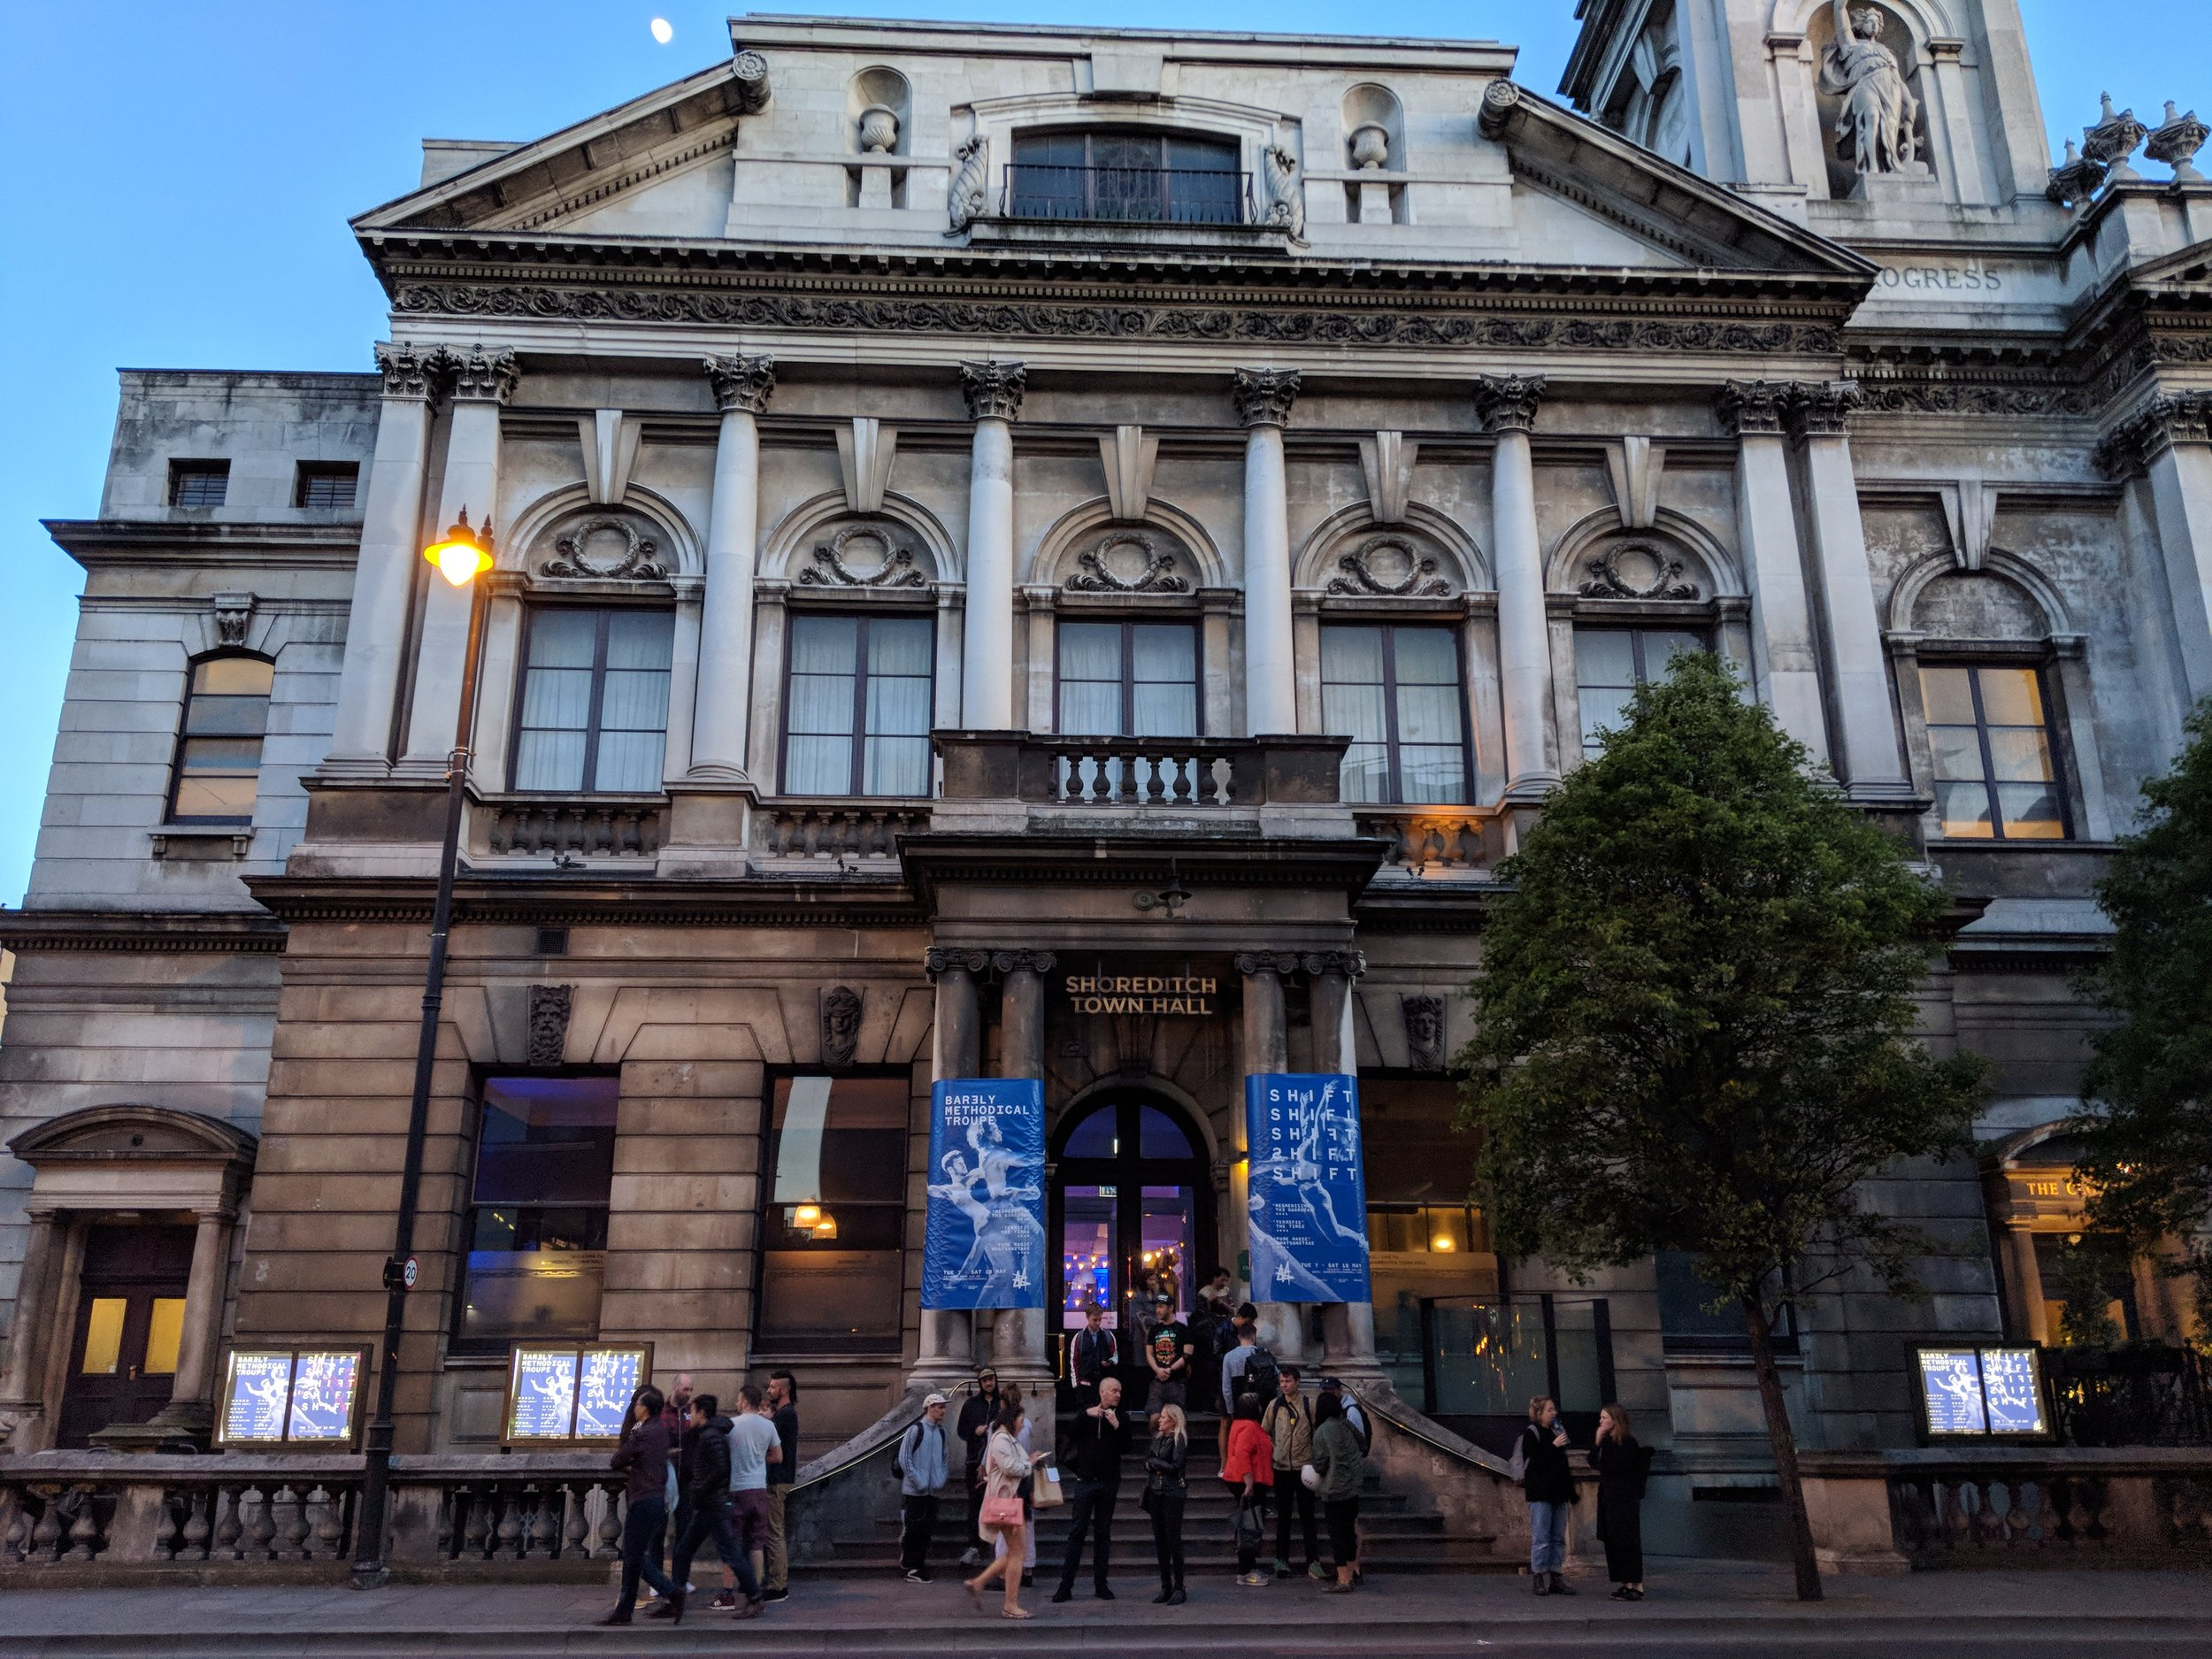 Shoreditch Town Hall - visited 14/05/2019